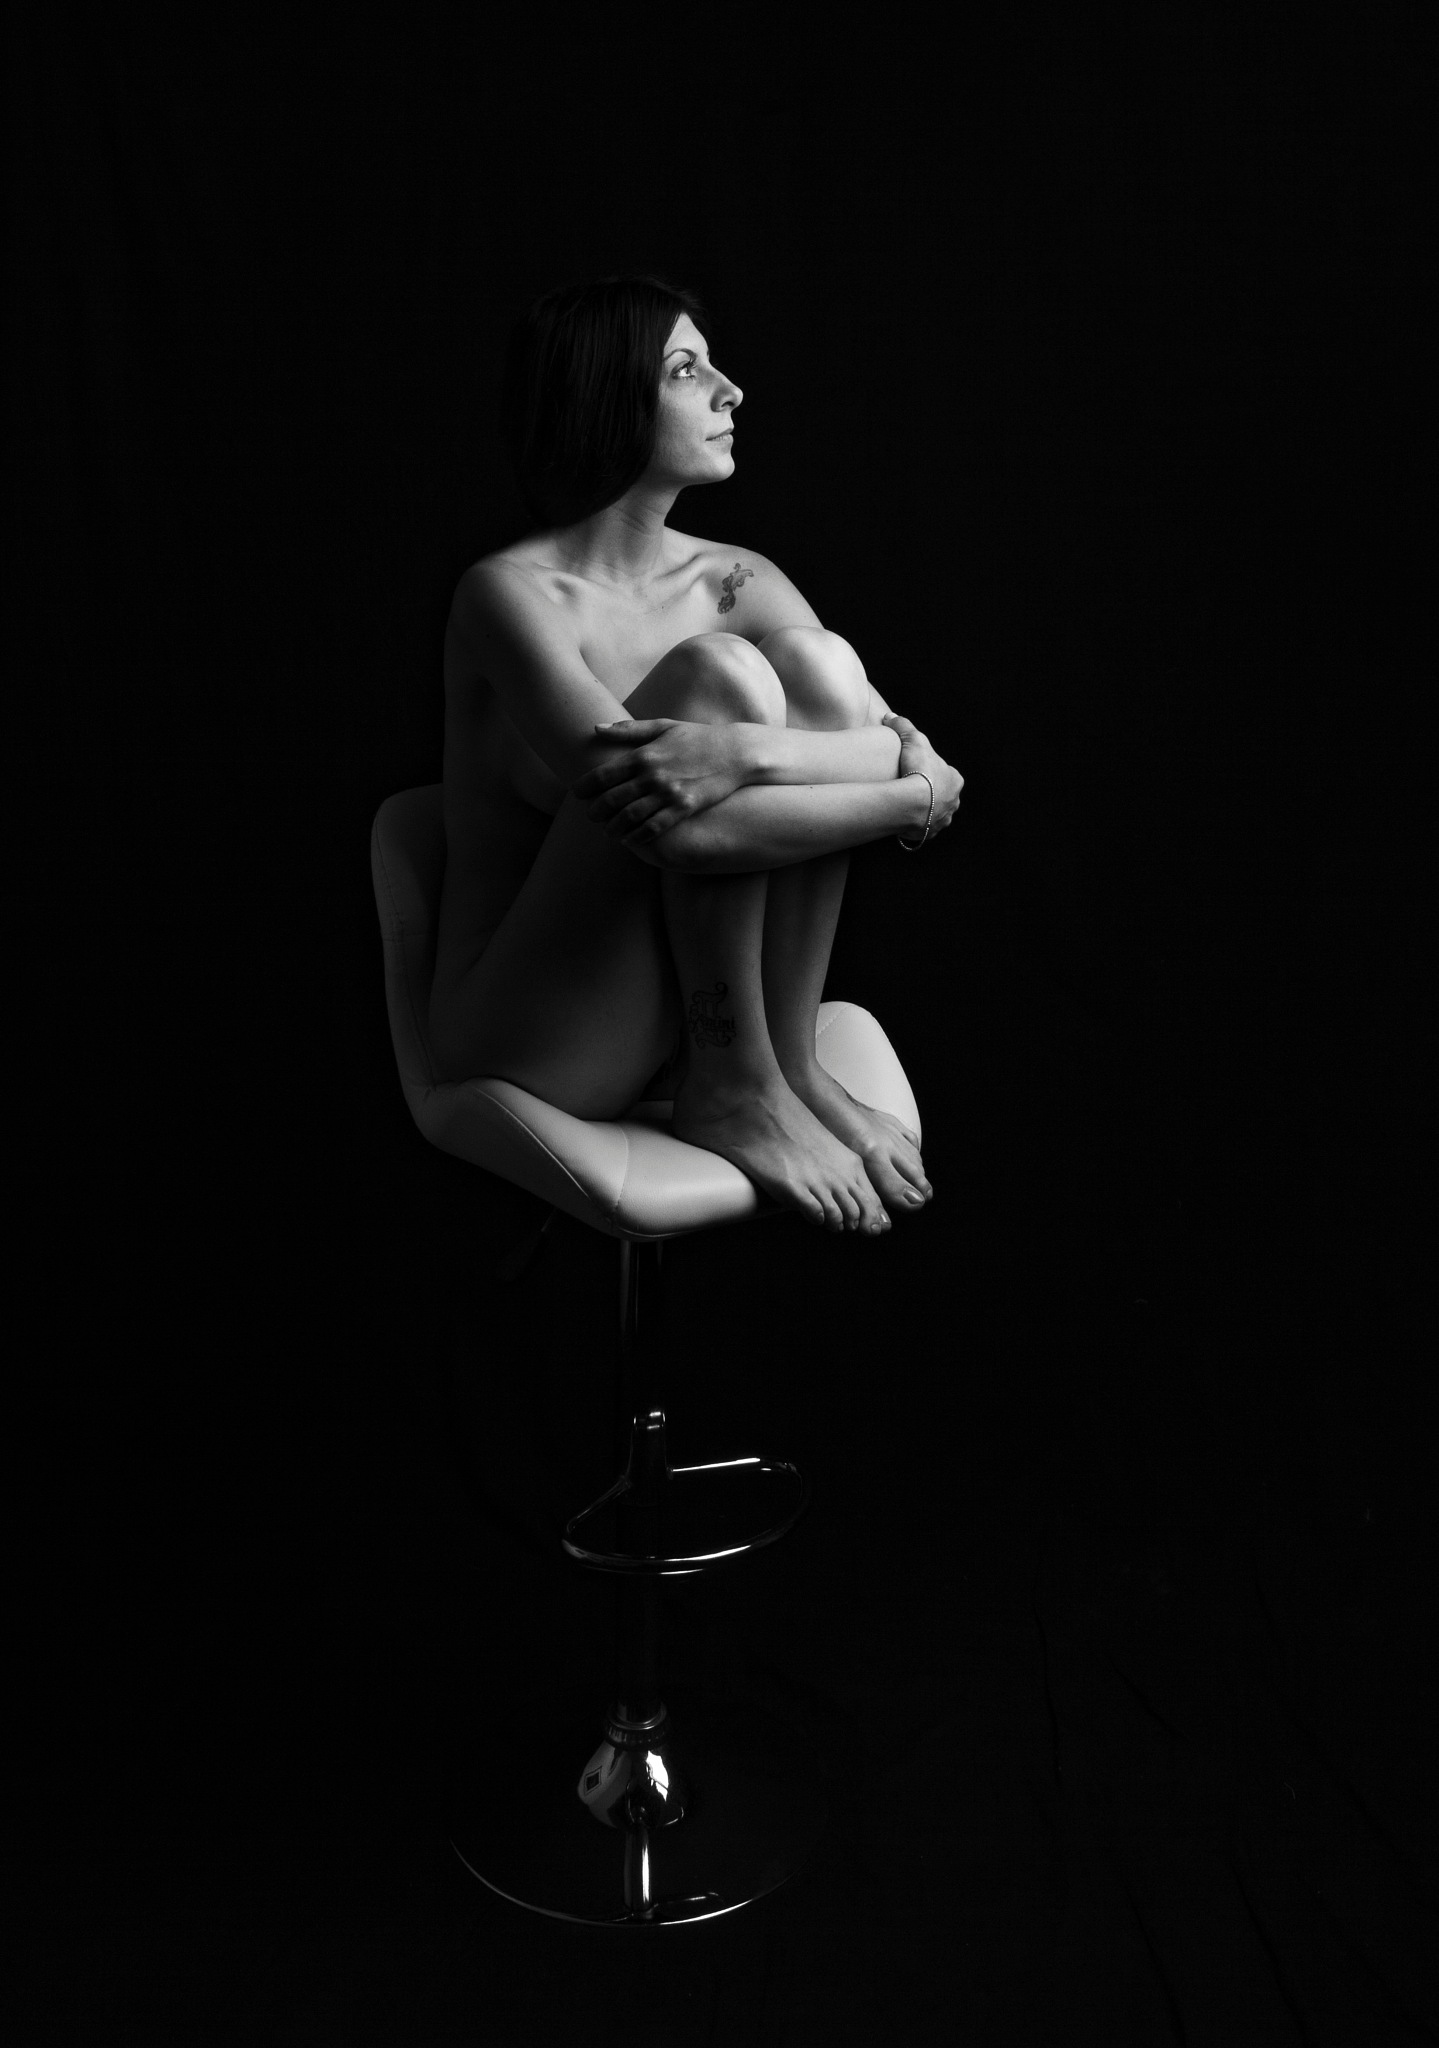 Nude on big chair by Orr Patrick Nir